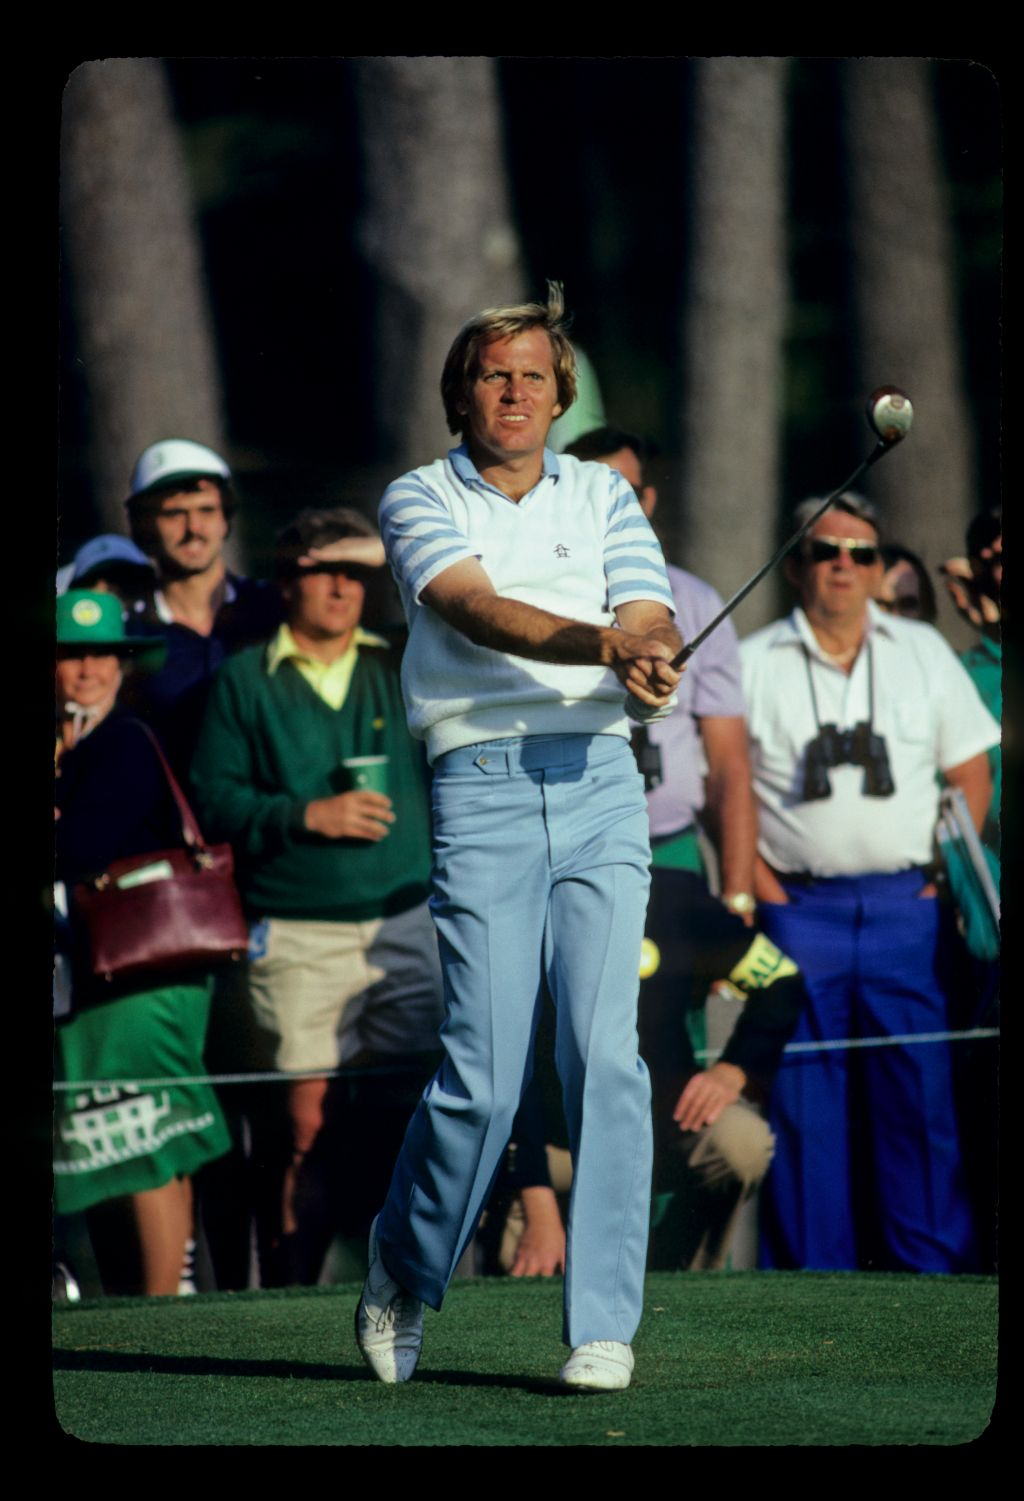 American golfer Keith Fergus looks anxiously after his drive at the 1983 Masters